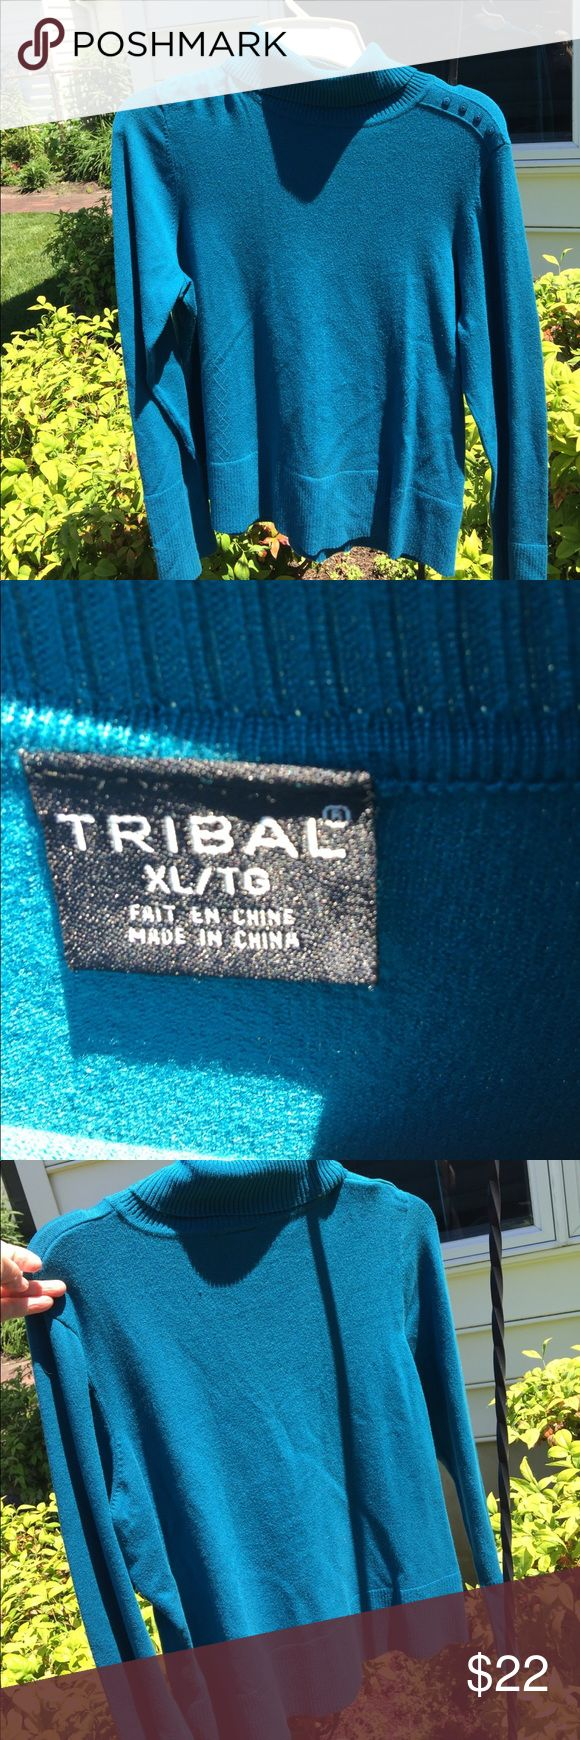 Tribal turtleneck sweater Turquoise blue Tribal sweater with four buttons at left of neckline and on each sleeve cuff are seven buttons. Small piece of one button on the sleeve has a small piece chipped off.No stains or tears. Smoke-free pet free home.Worn but in good condition. Tribal Sweaters Cowl & Turtlenecks